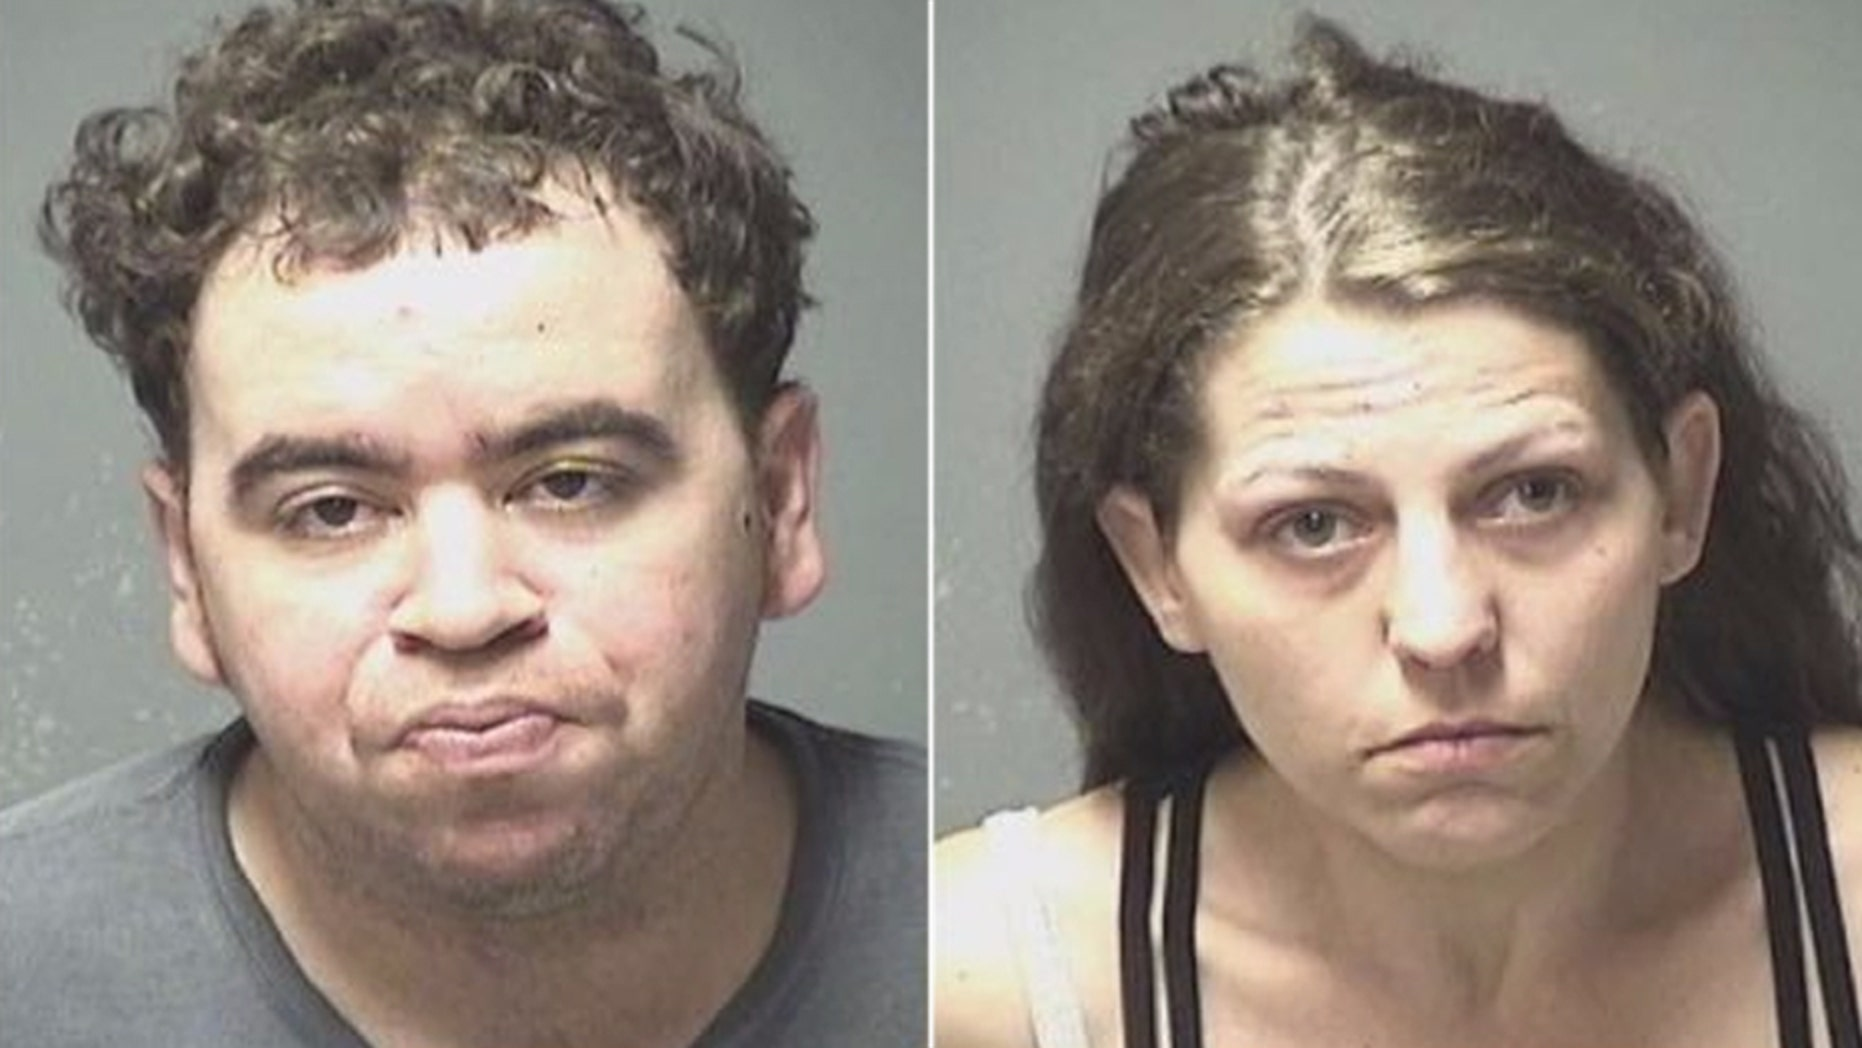 Joshua Garvey, 31, and and Christen Gelinas, 33, were charged with four counts of possession of a controlled drug with intent to distribute after police searched their apartment as a part of an investigation into the death of a 20-month-old boy.